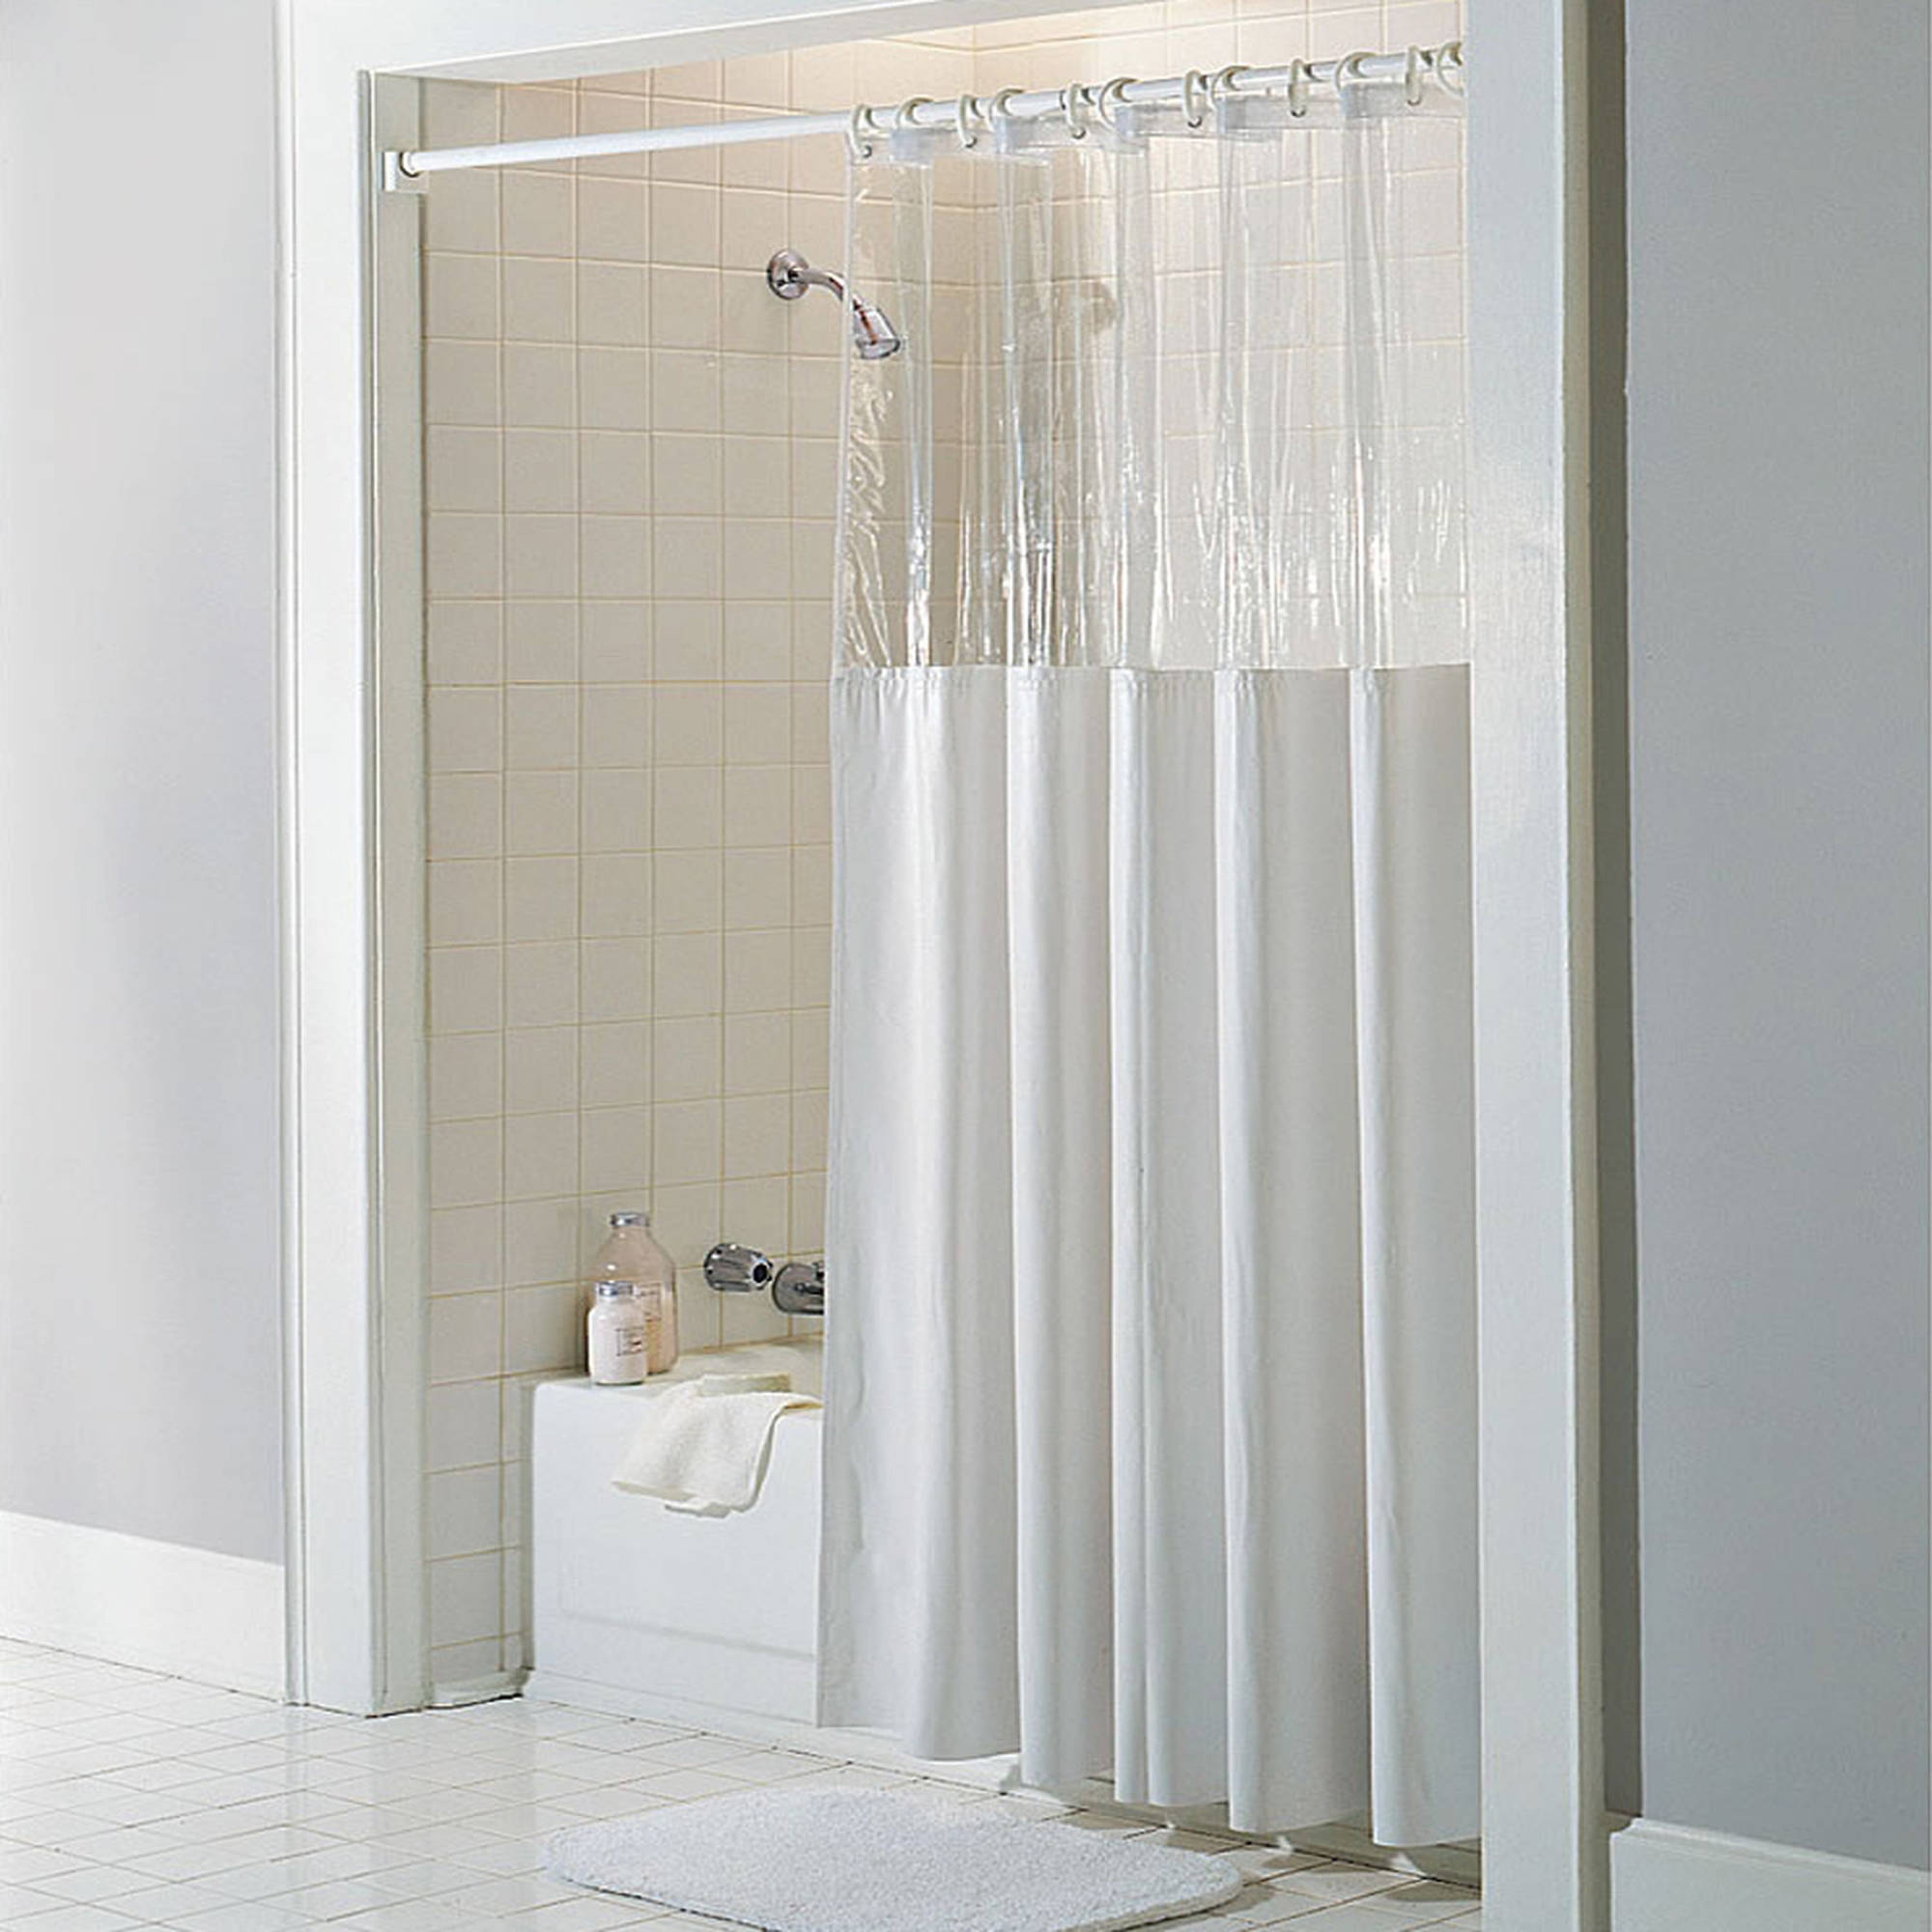 "See Through Top Clear/White Vinyl Bath Shower Curtain, 72"" x 72"""